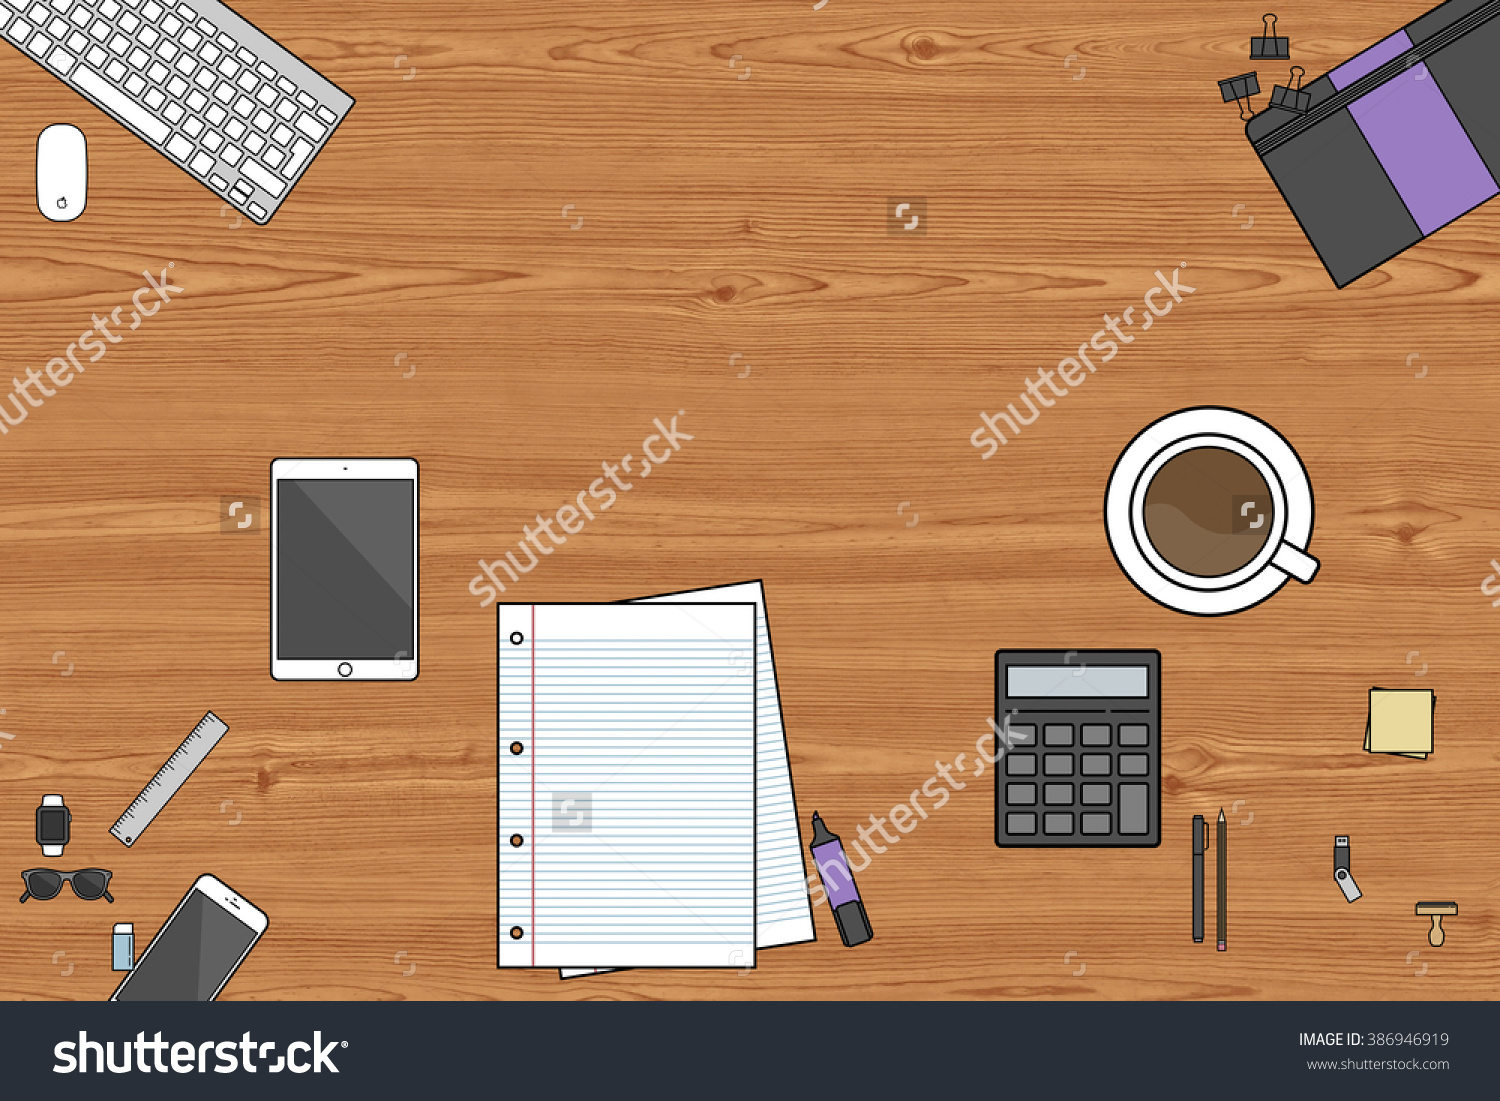 clipart stationery view from the top #386946919.